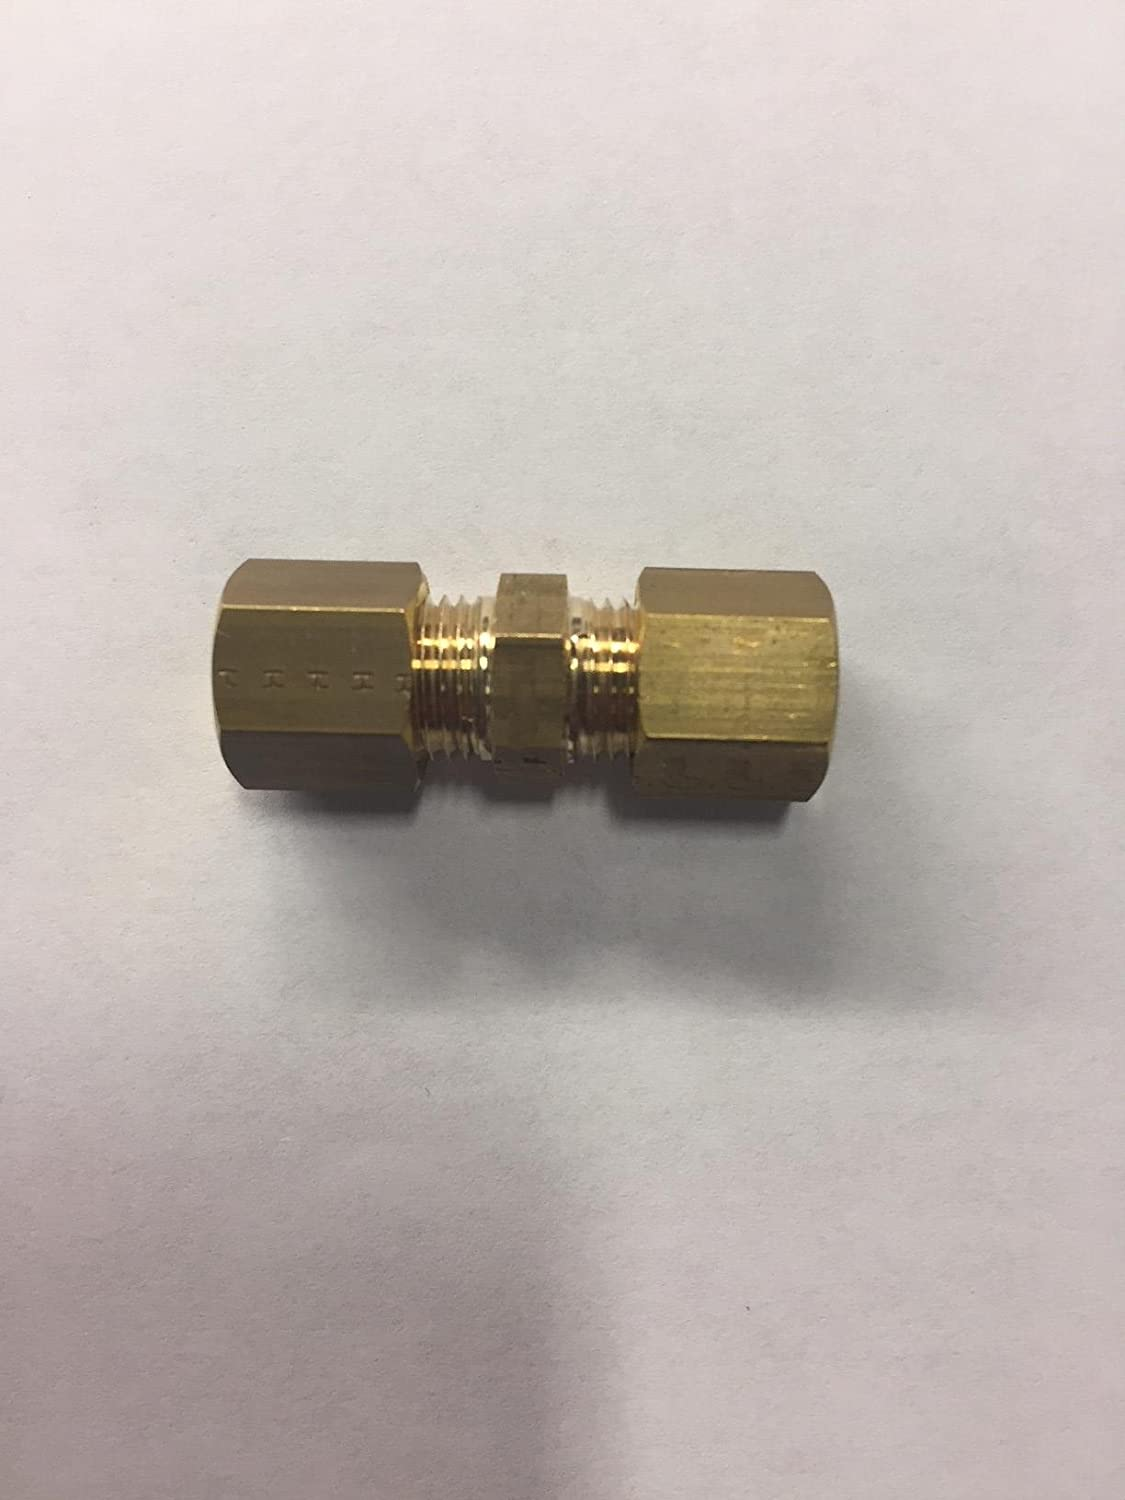 Connector 22 mm Tube to Tube Pack of 10 Parker 0106 22 00-pk10 Compression Fitting 22 mm Brass